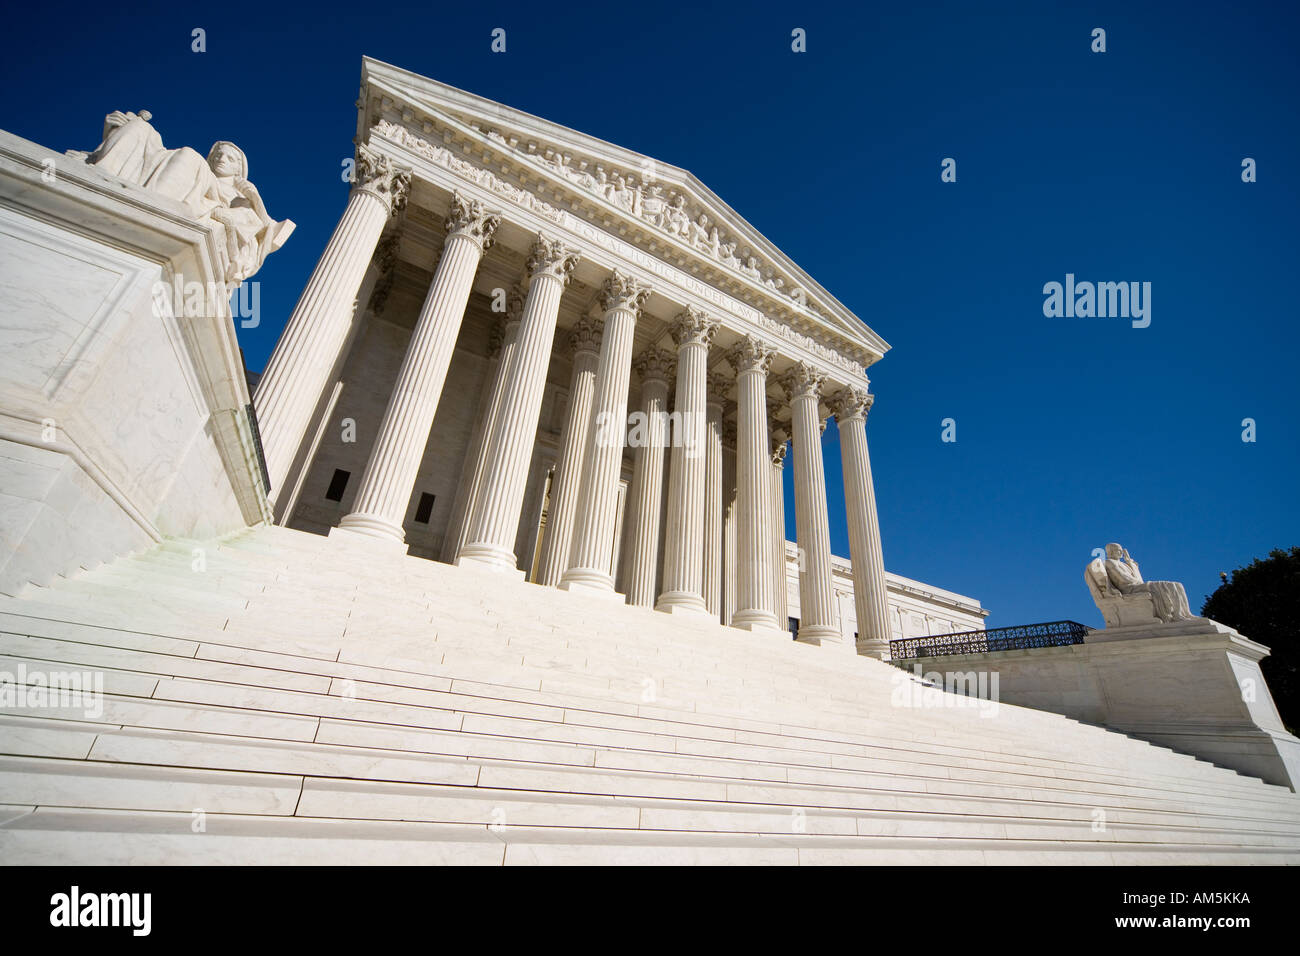 Main entrance, colonnade, steps and statues of the U.S. Supreme Court Building. Washington DC - Stock Image